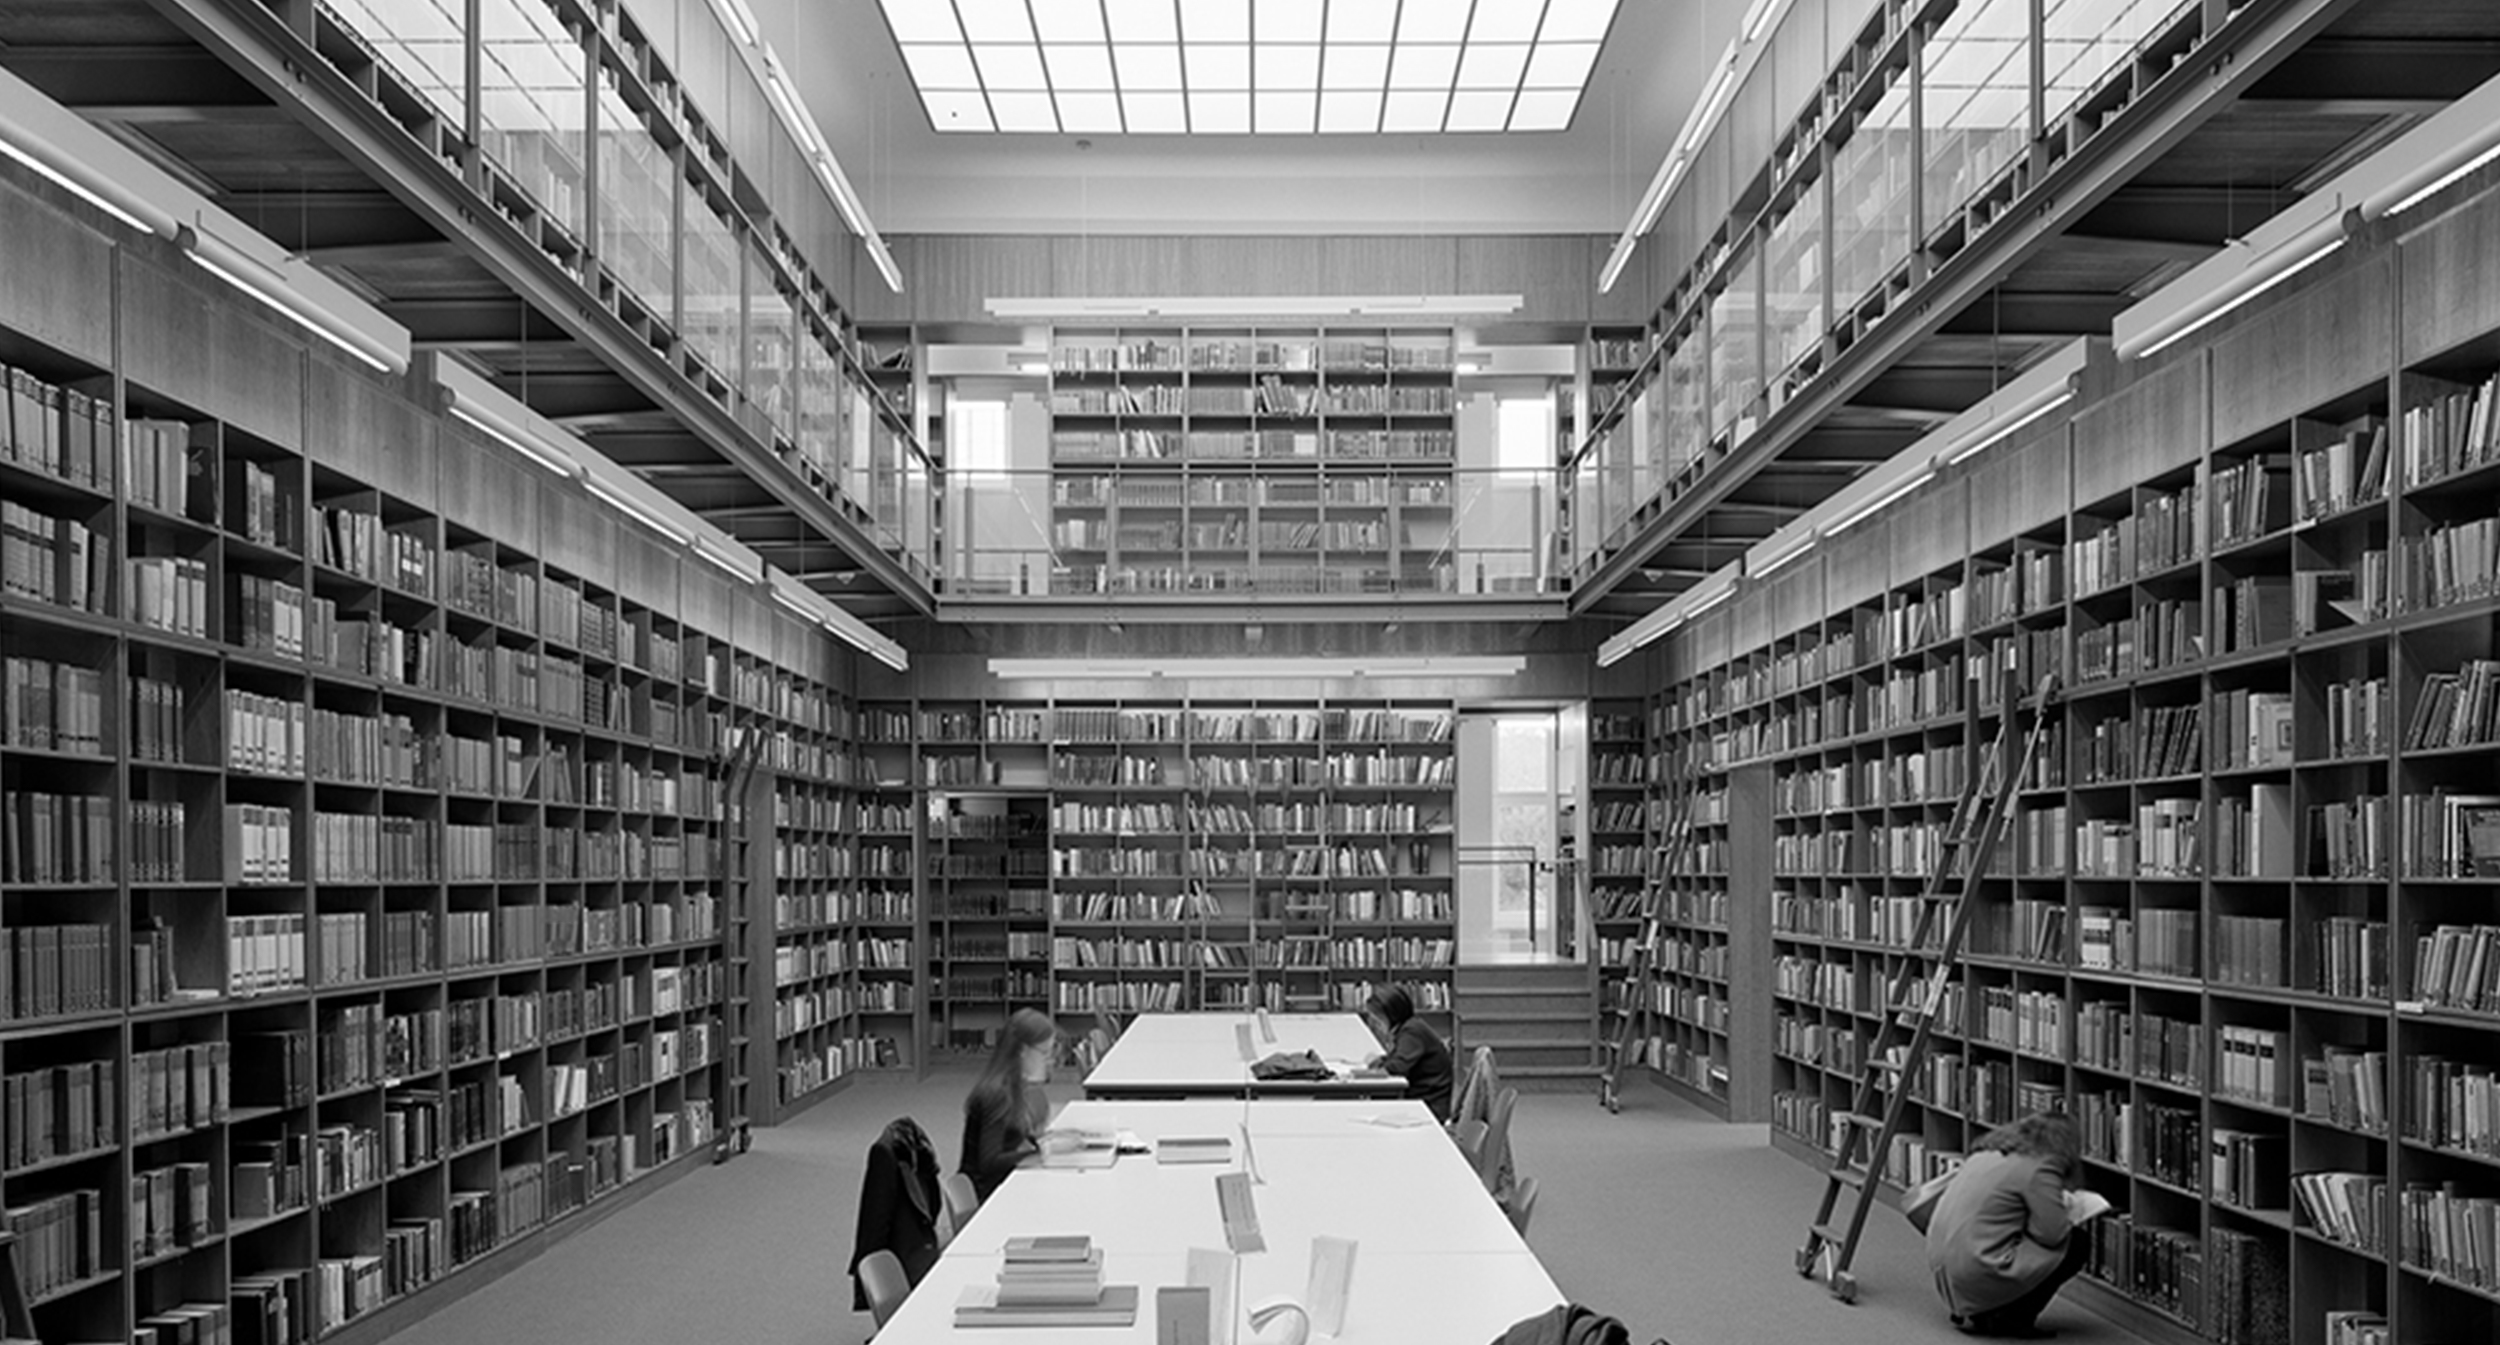 iF-Award, Industrie Forum Design Hannover 2000   A Luminaire Series at the library of  Goethe University  in Frankfurt received the iF-Award by Industrie Forum Designer Hannover.